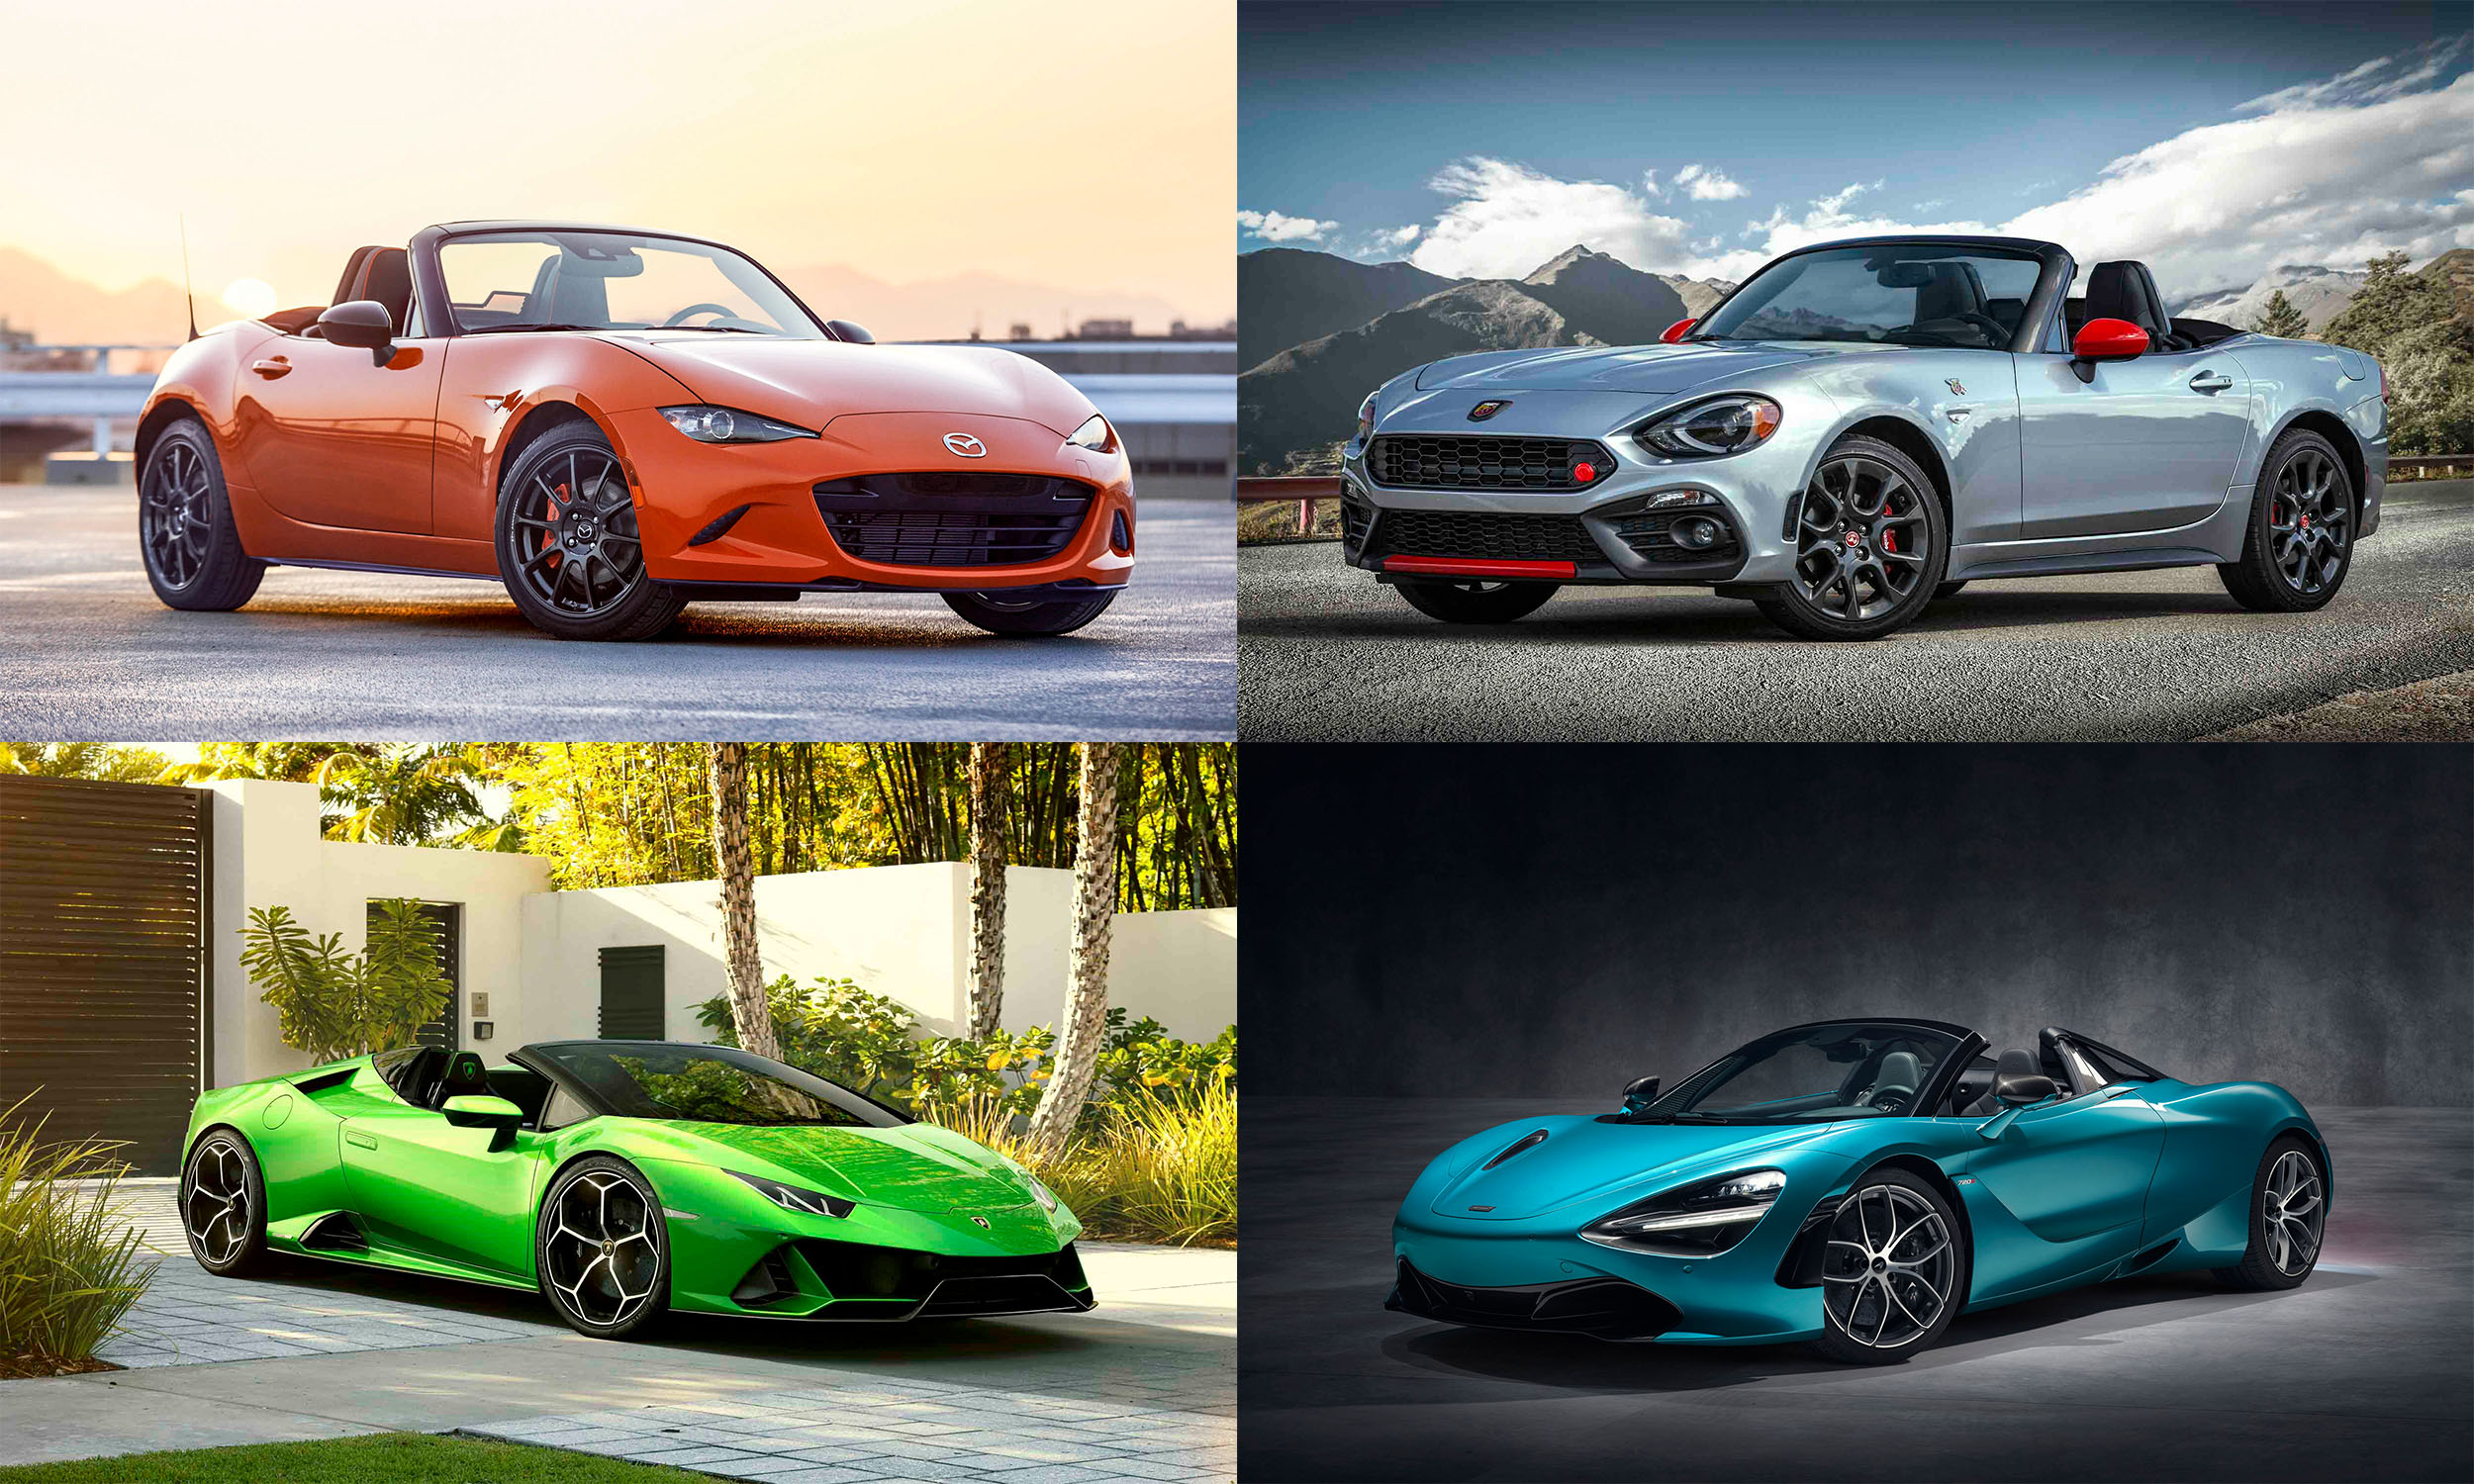 © Mazda North American Operations; FCA US LLC; © McLaren Automotive Limited; Automobili Lamborghini S.p.A.